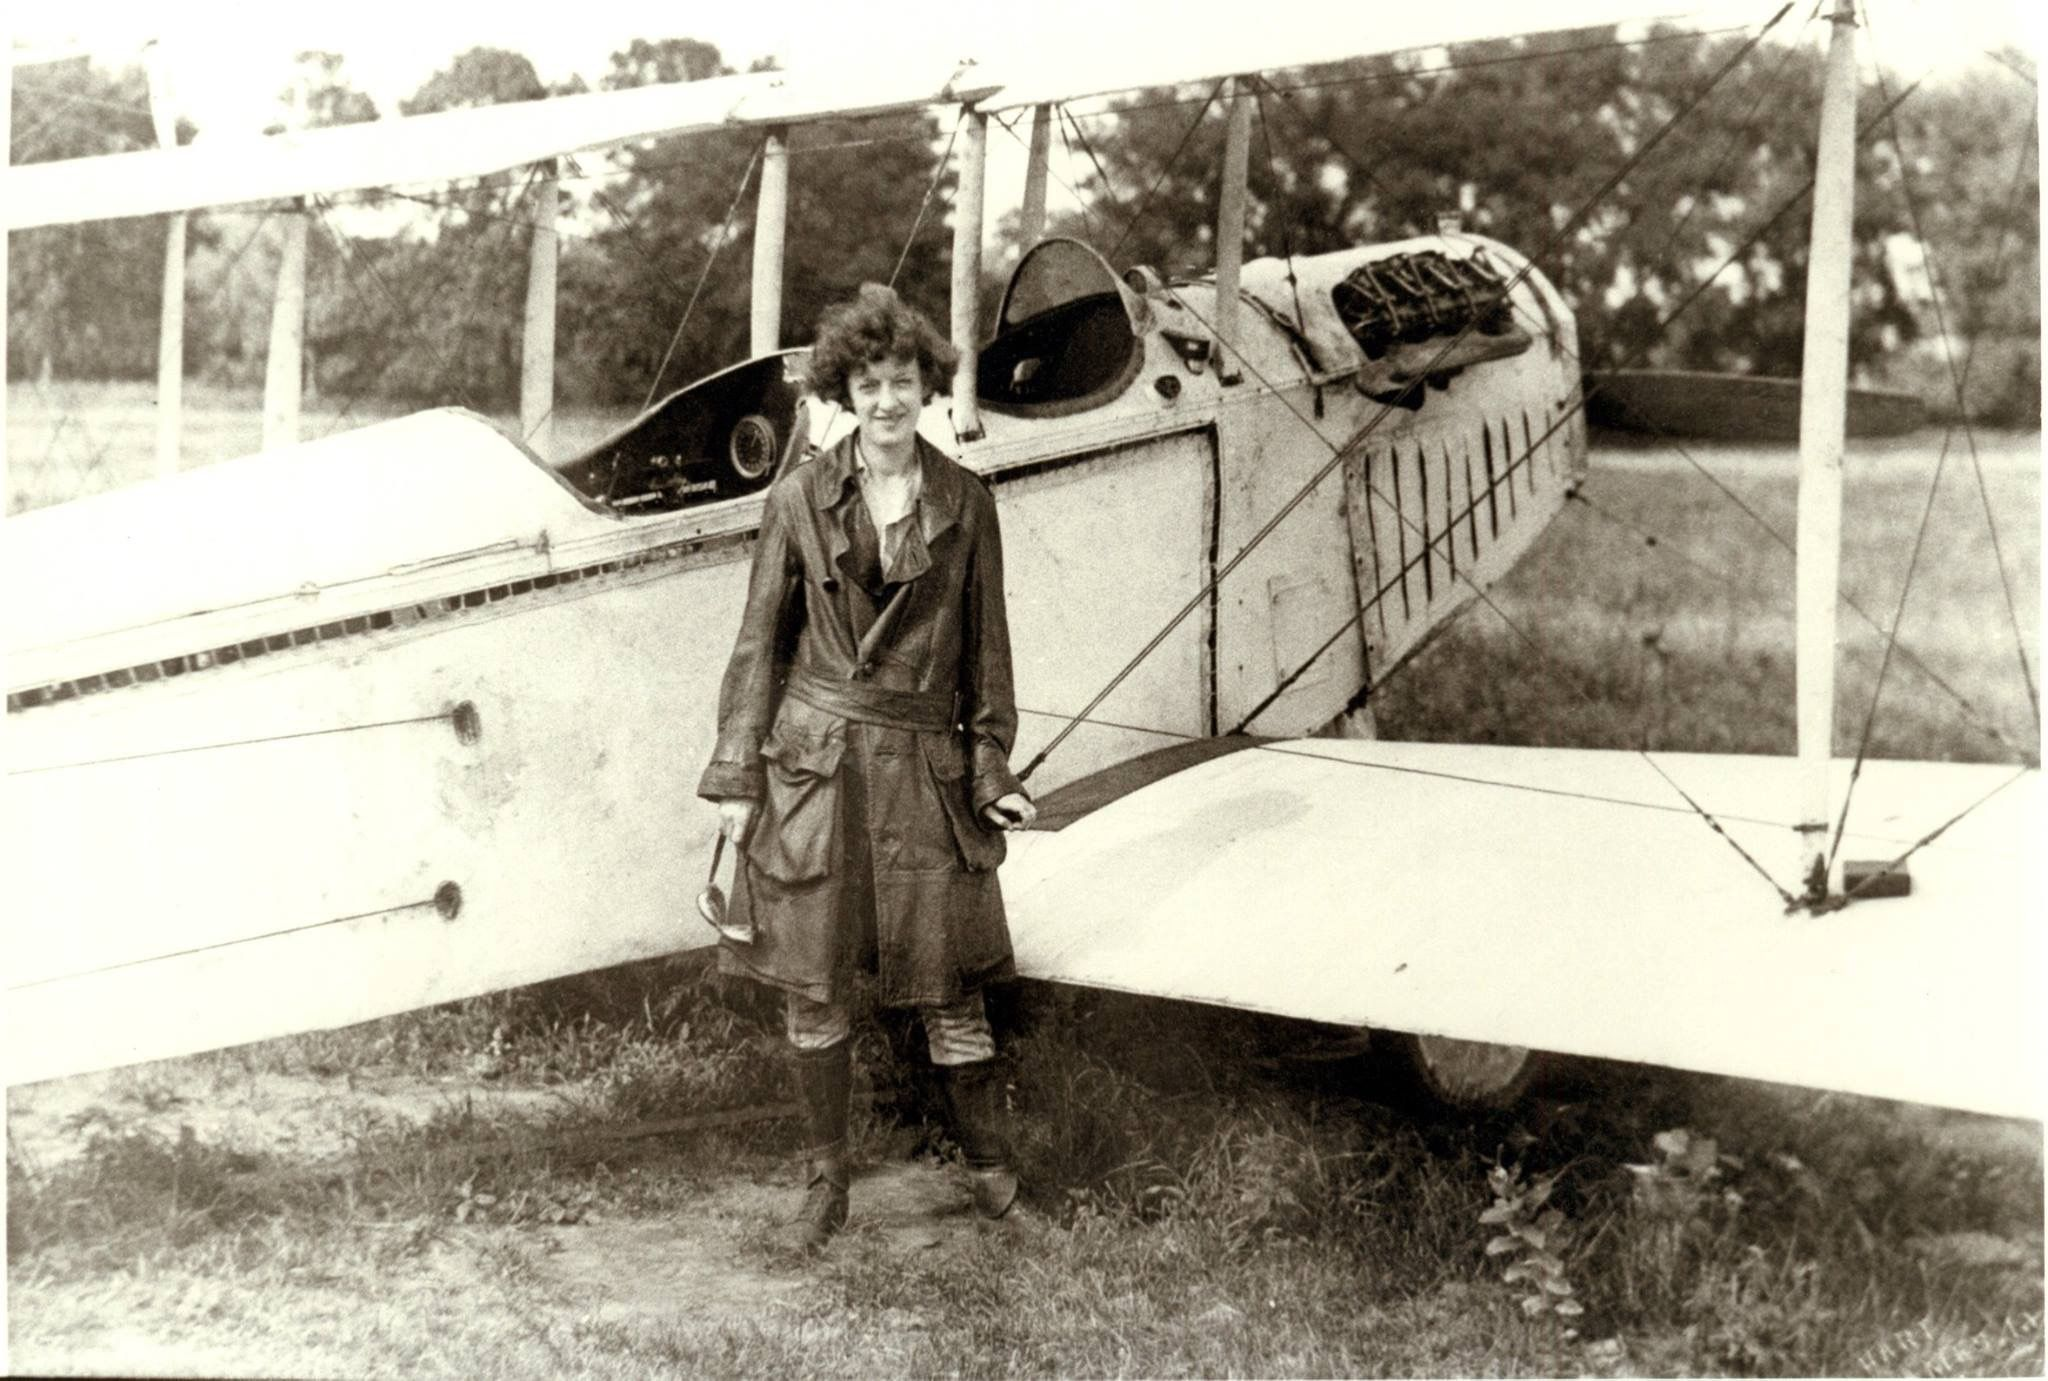 in 1915 neta snook entered iowa state college after in 1915 neta snook entered iowa state college after graduating from ames high attended